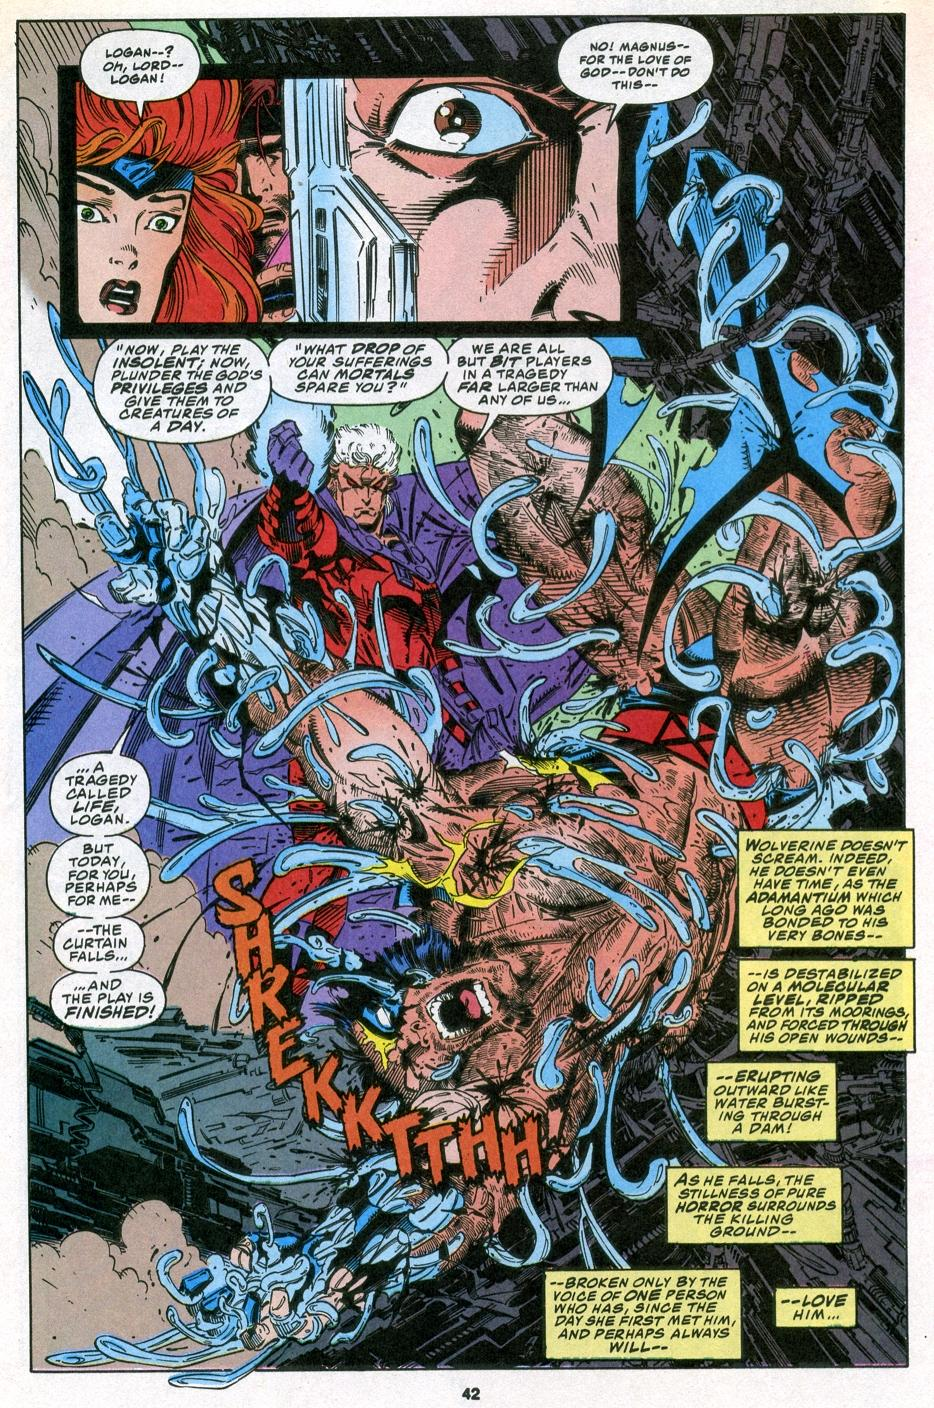 Page from X-Men #25, Vol 2, written by Fabien Nicieza and illustrated by Andy Kubert. In this picture my friend is like Magneto and I'm like Wolverine, minus the muscles and cool muttonchops.